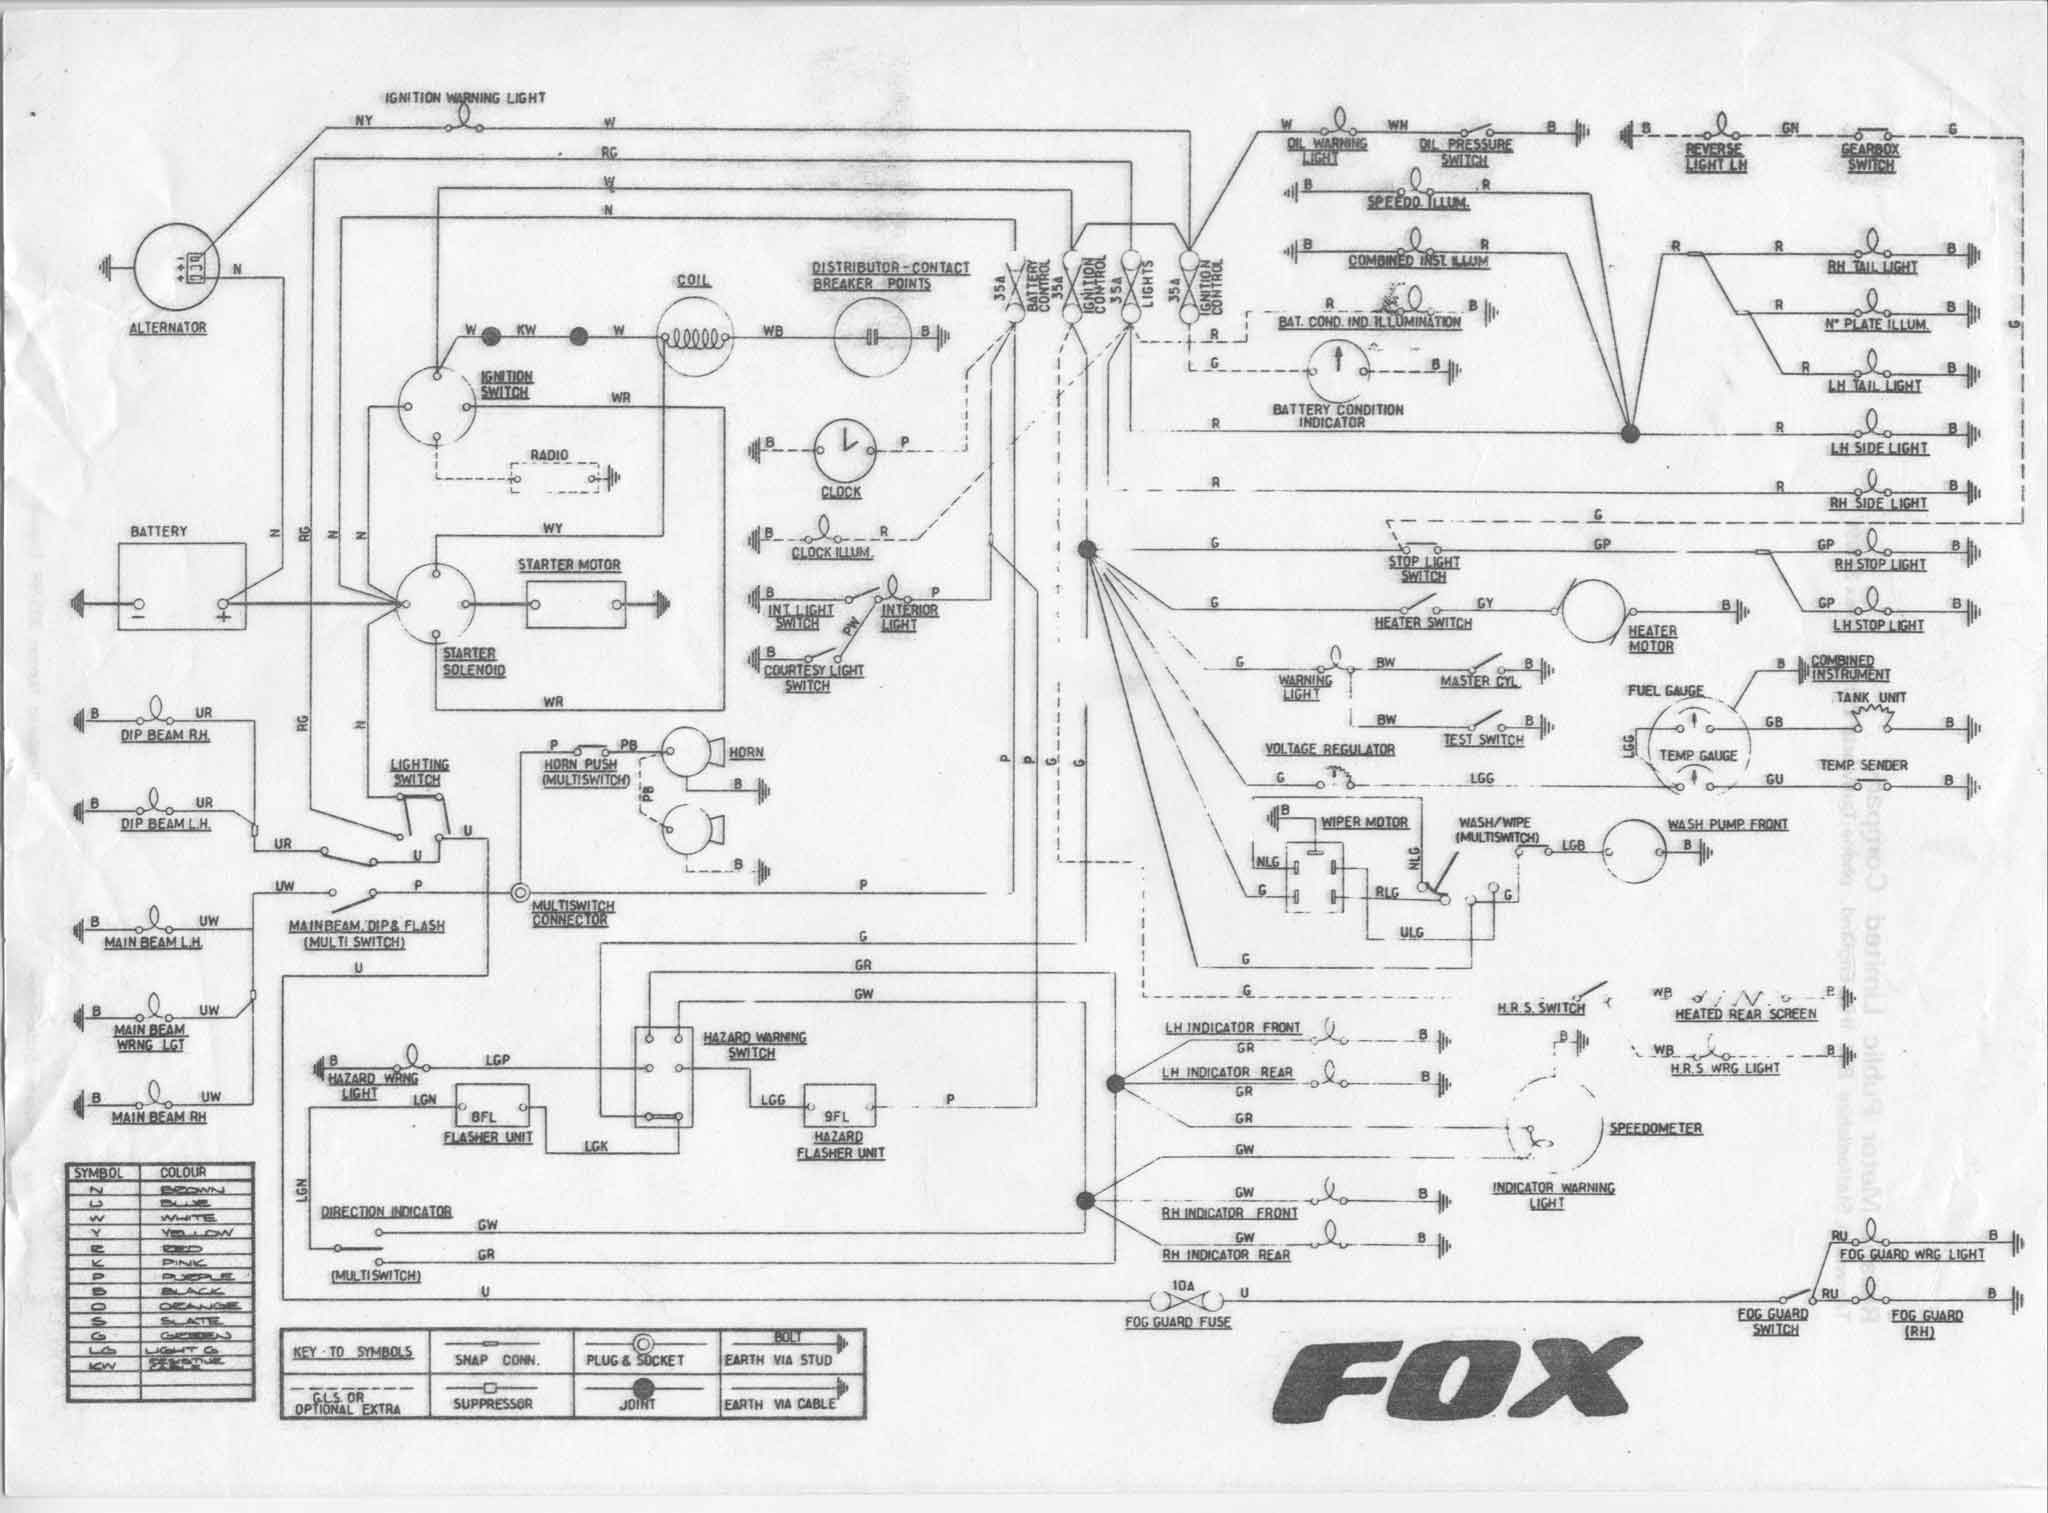 Reliant fox wiring diagram covers most of tempest asquith vantique mk2 and mk3 robin